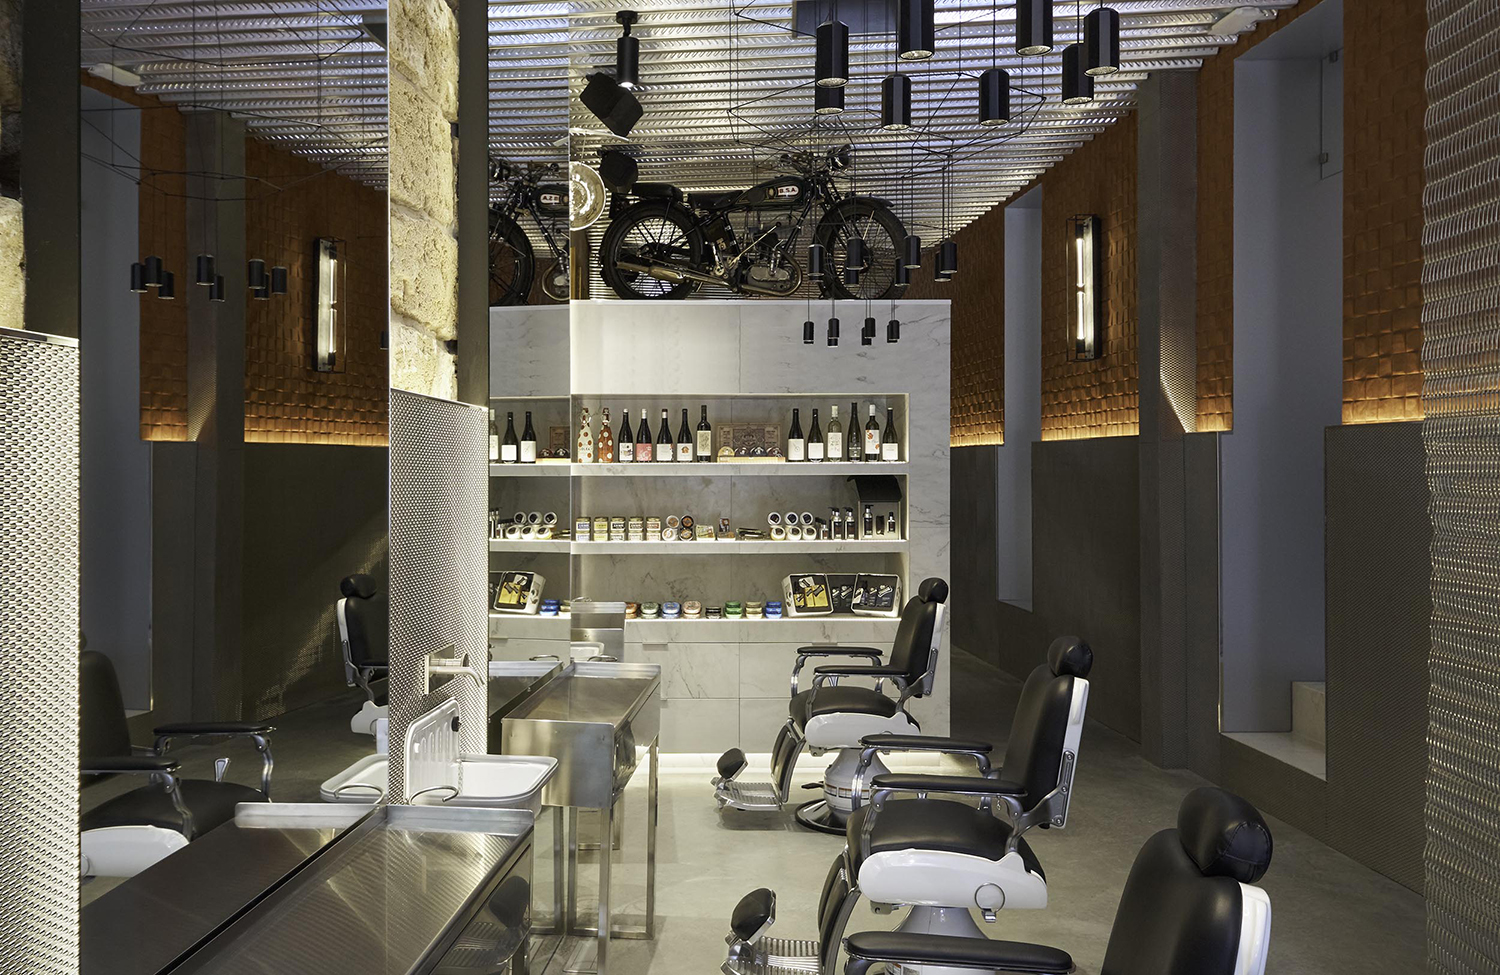 6-art-sanchez-architecture-interior-design-photography-mallorca-spain-minimal-studio-barbers-club.jpg